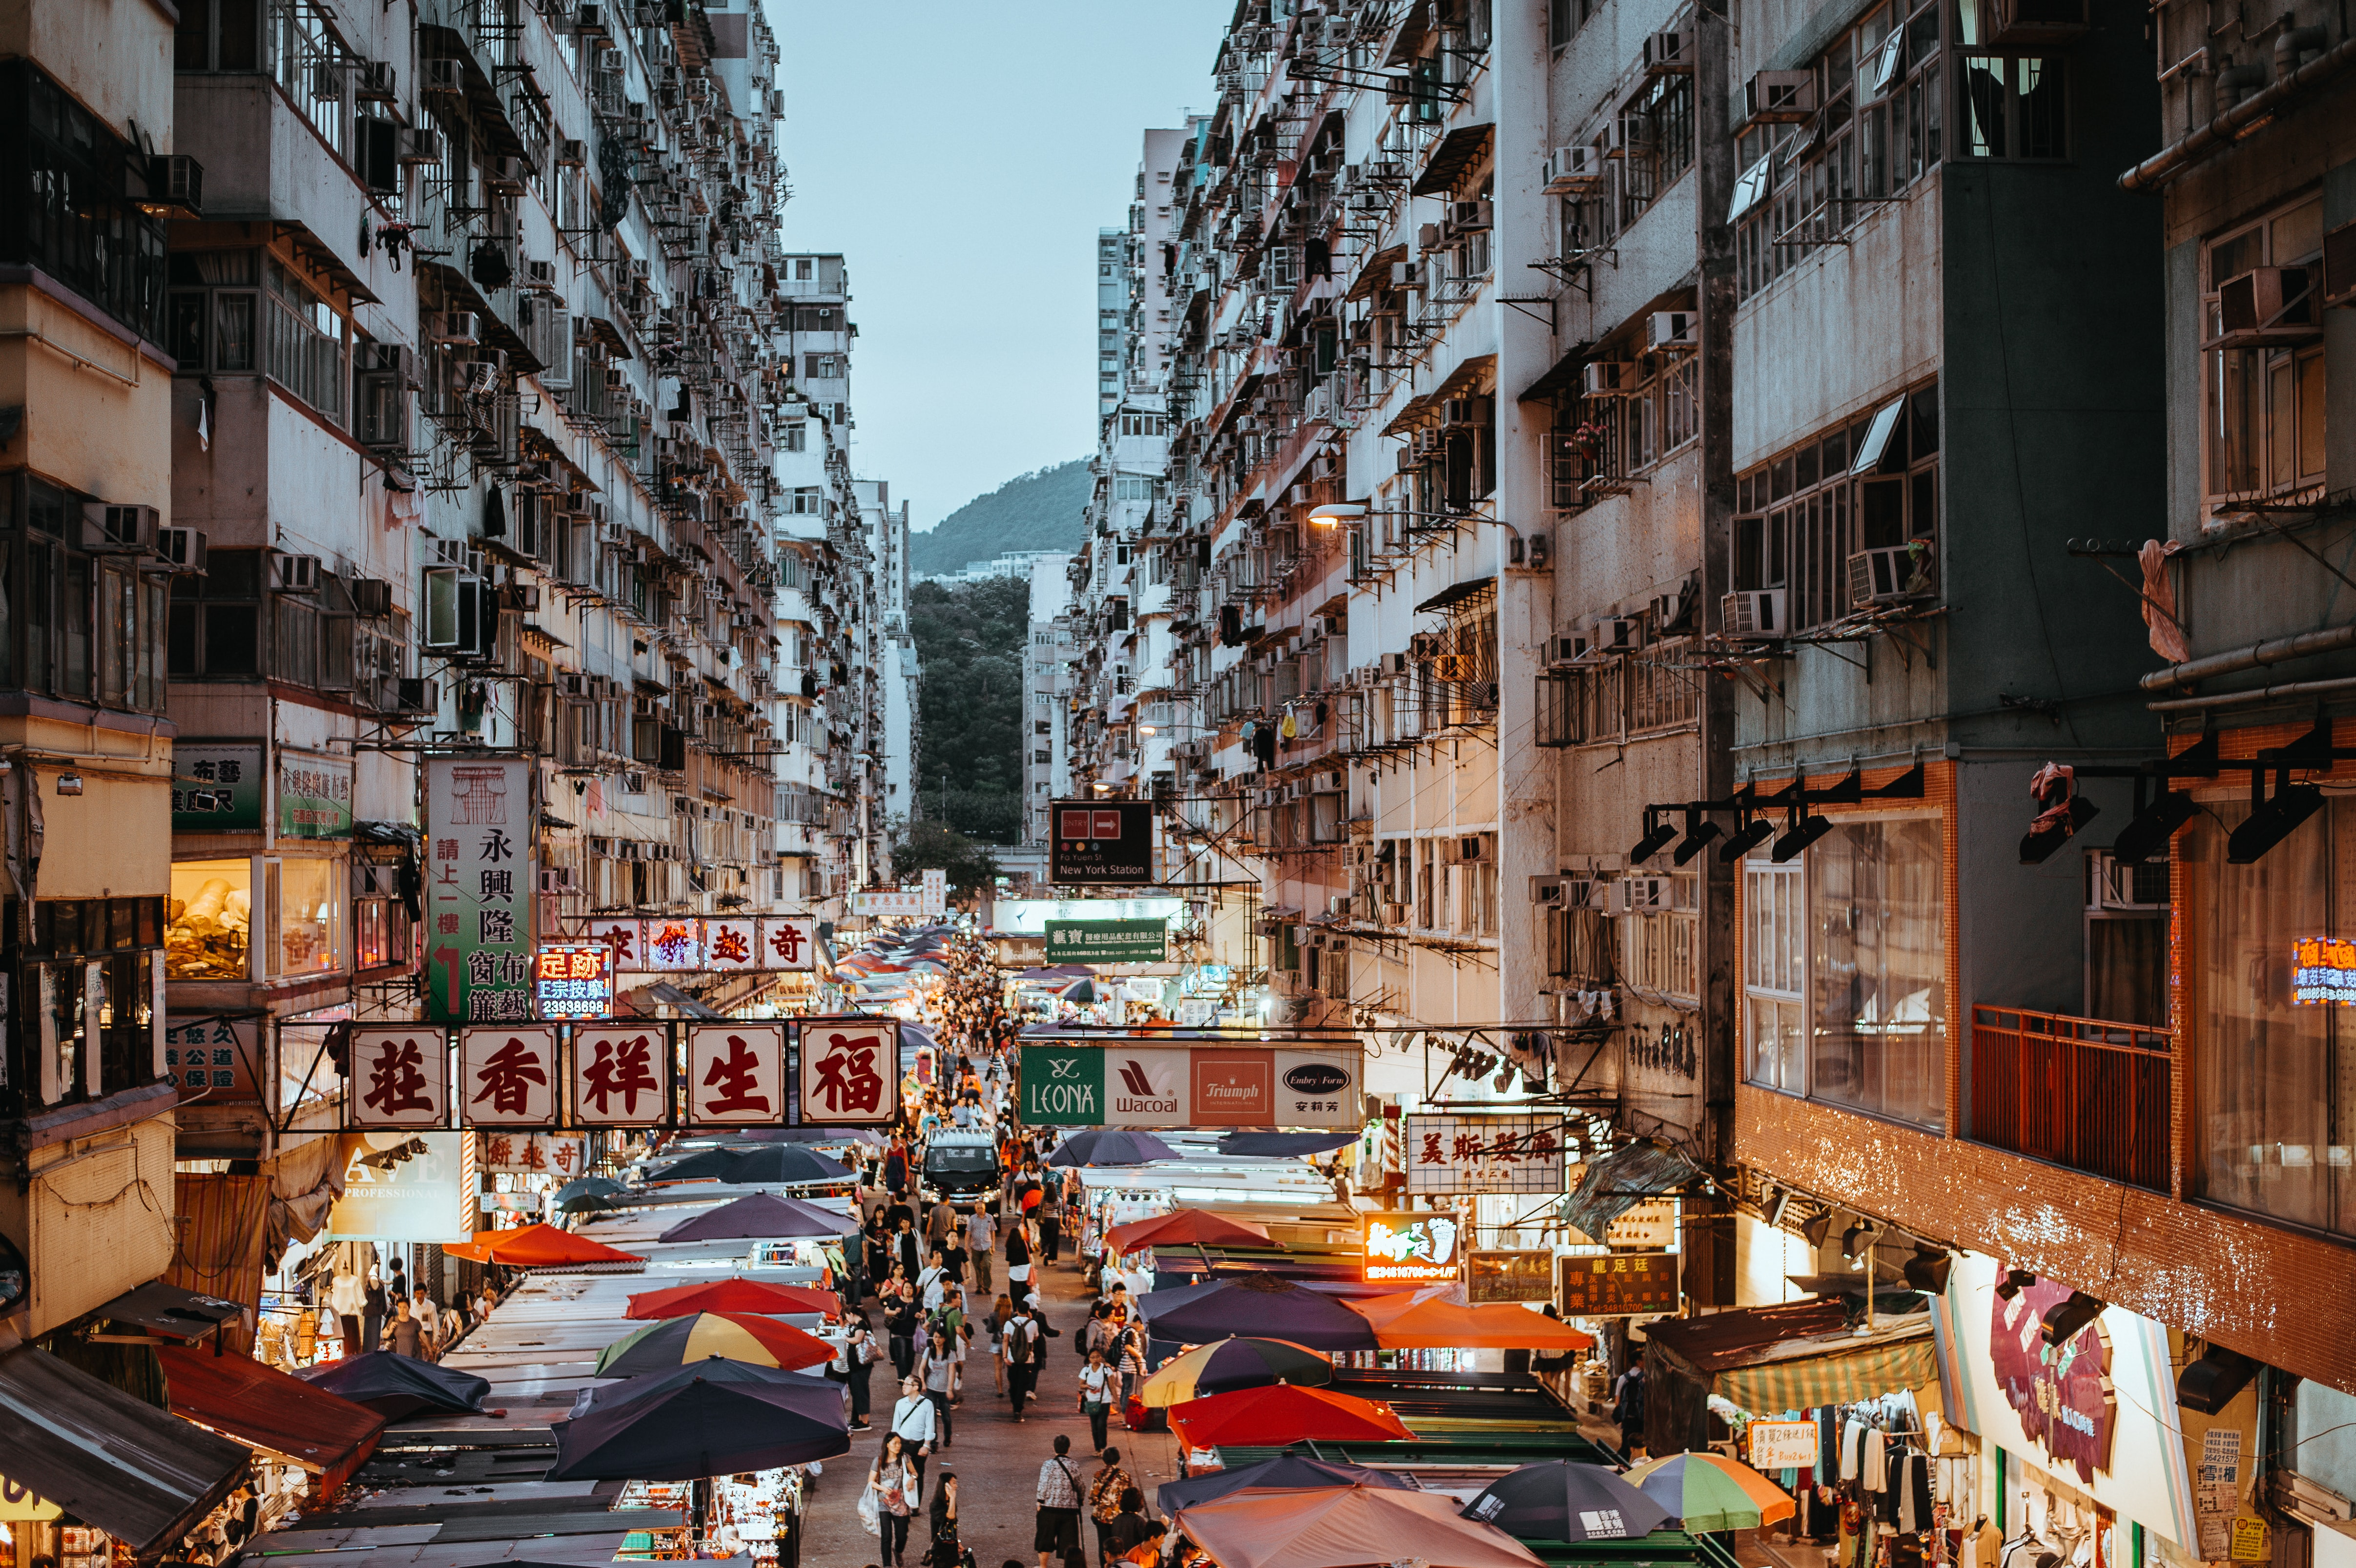 A high shot of a busy street with a marketplace in Hong Kong